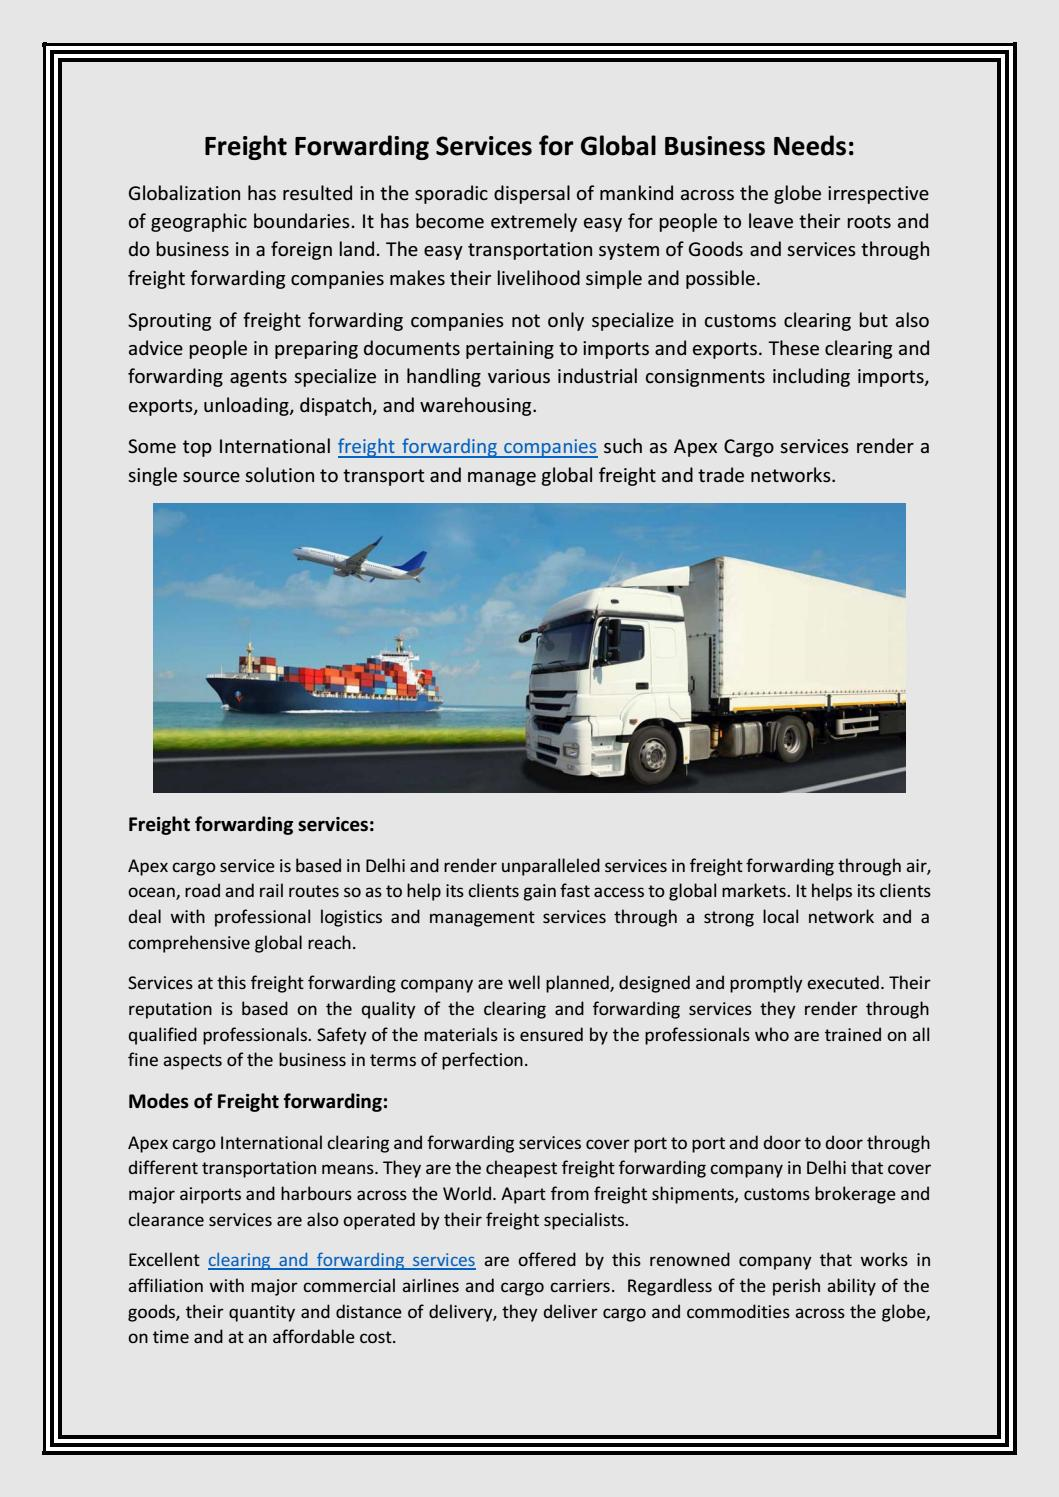 Freight Forwarding Services for Global Business Needs: by